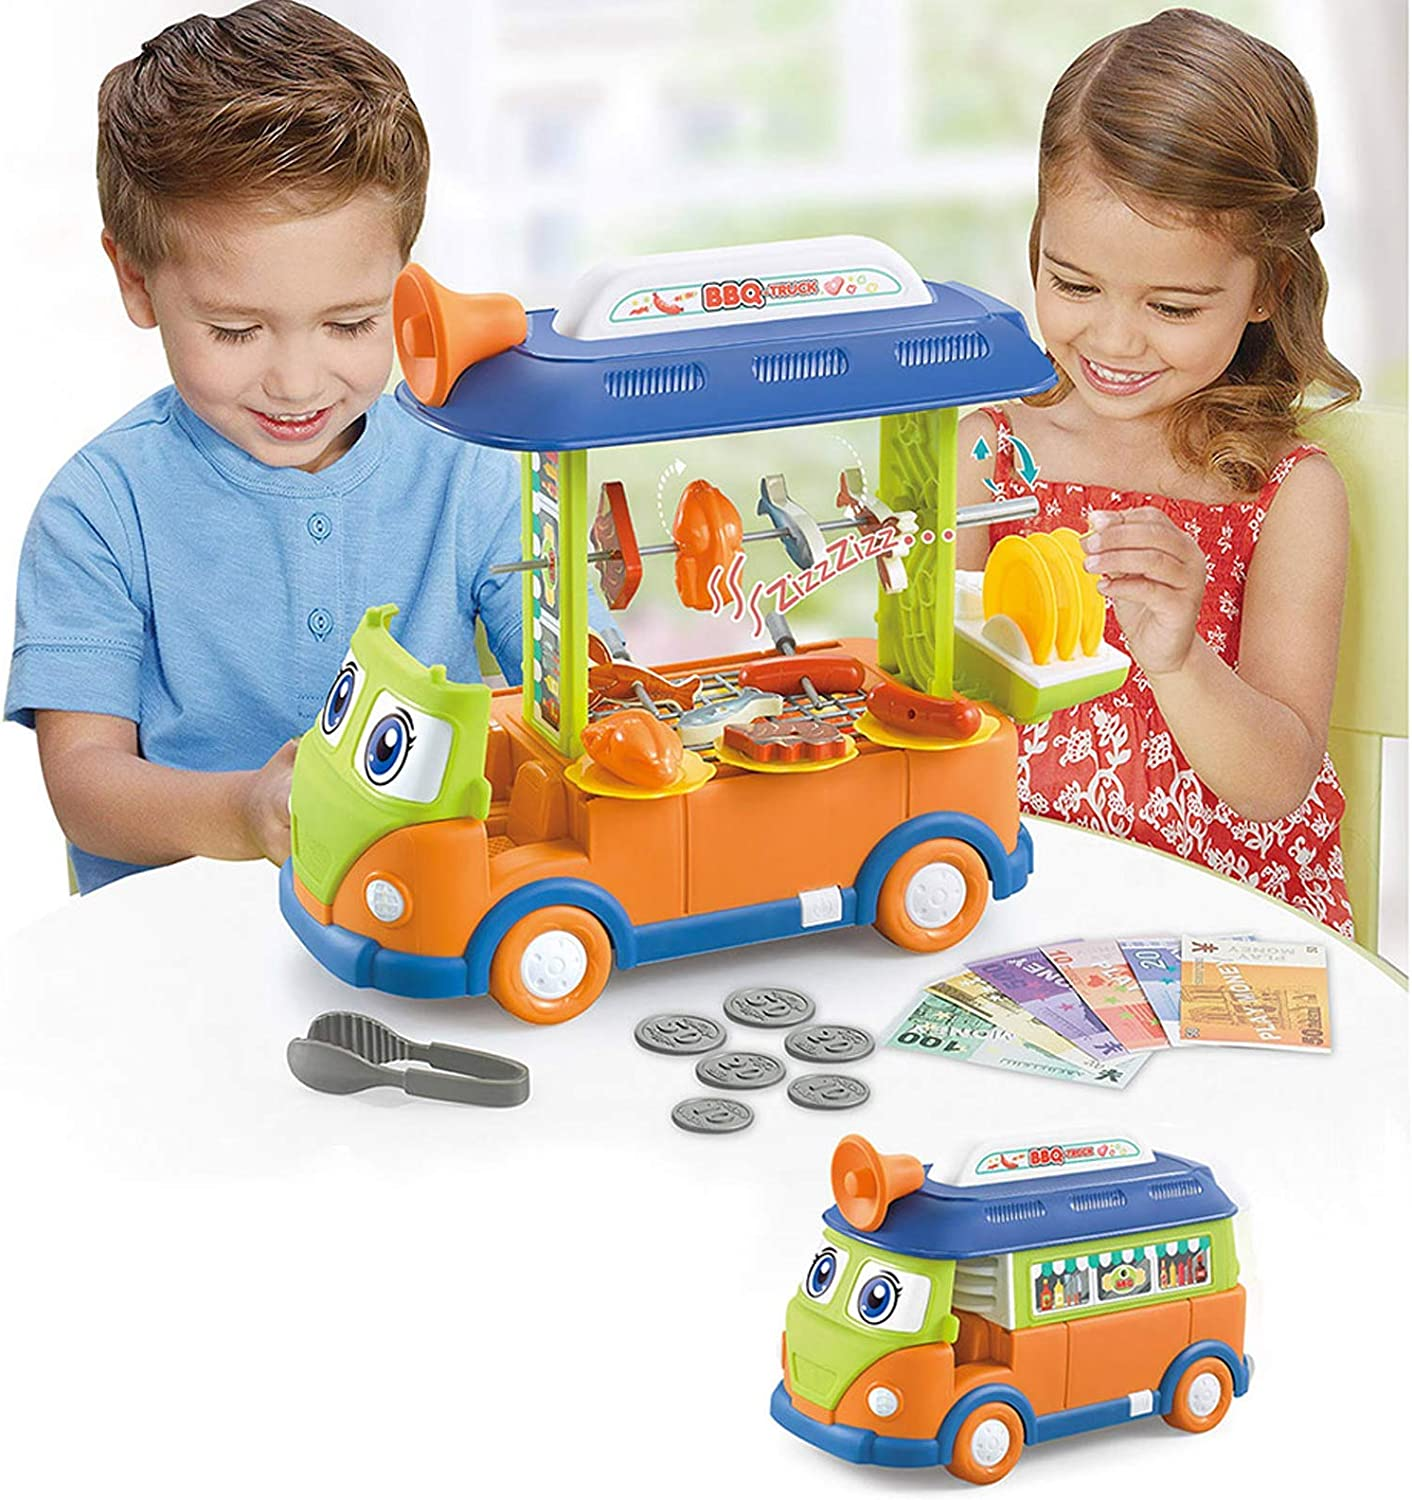 Toy Bus Set Toy Food Truck BBQ Bus for Kids Pretend Play Food Car with Sound and Light-Green Orange